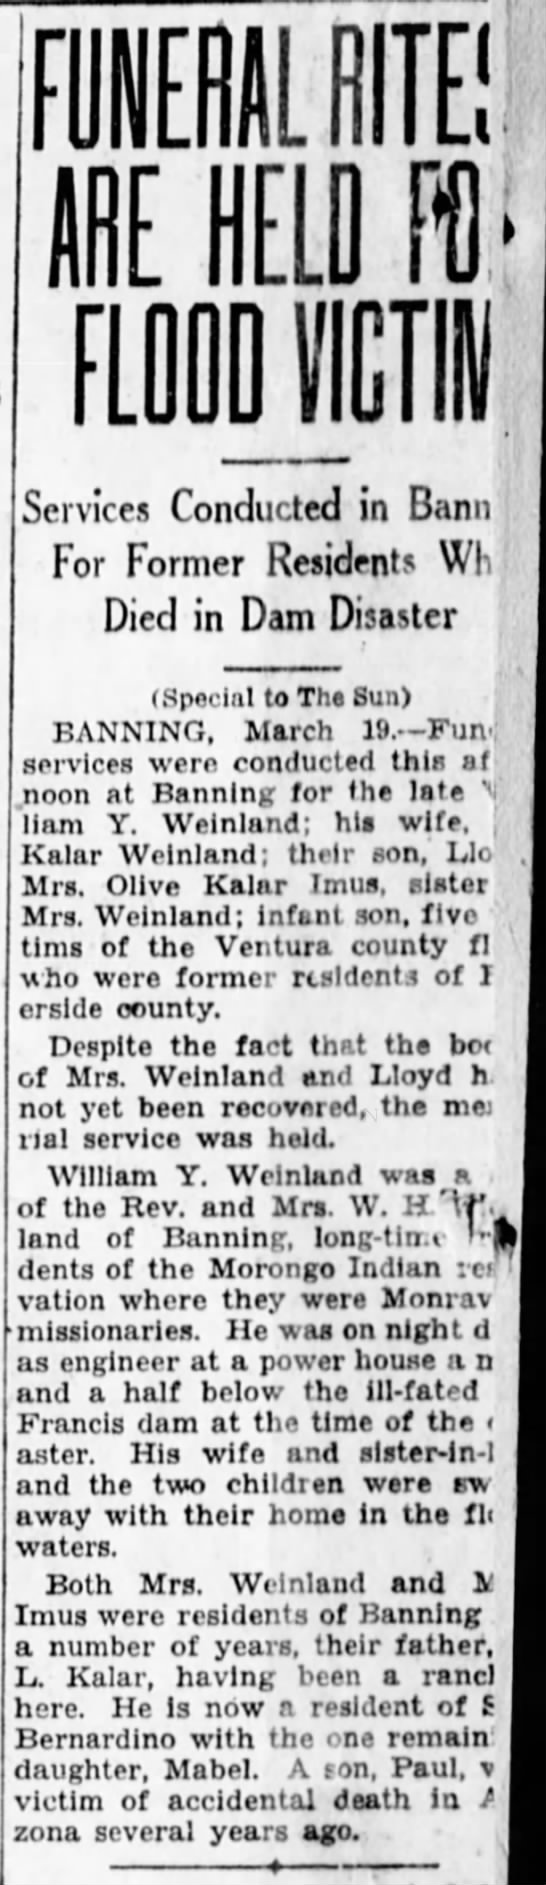 3/20/1928 San Bernardino County Sun - FUNERAL RITE! ARE HELD Ft FLOOD Ml Services...